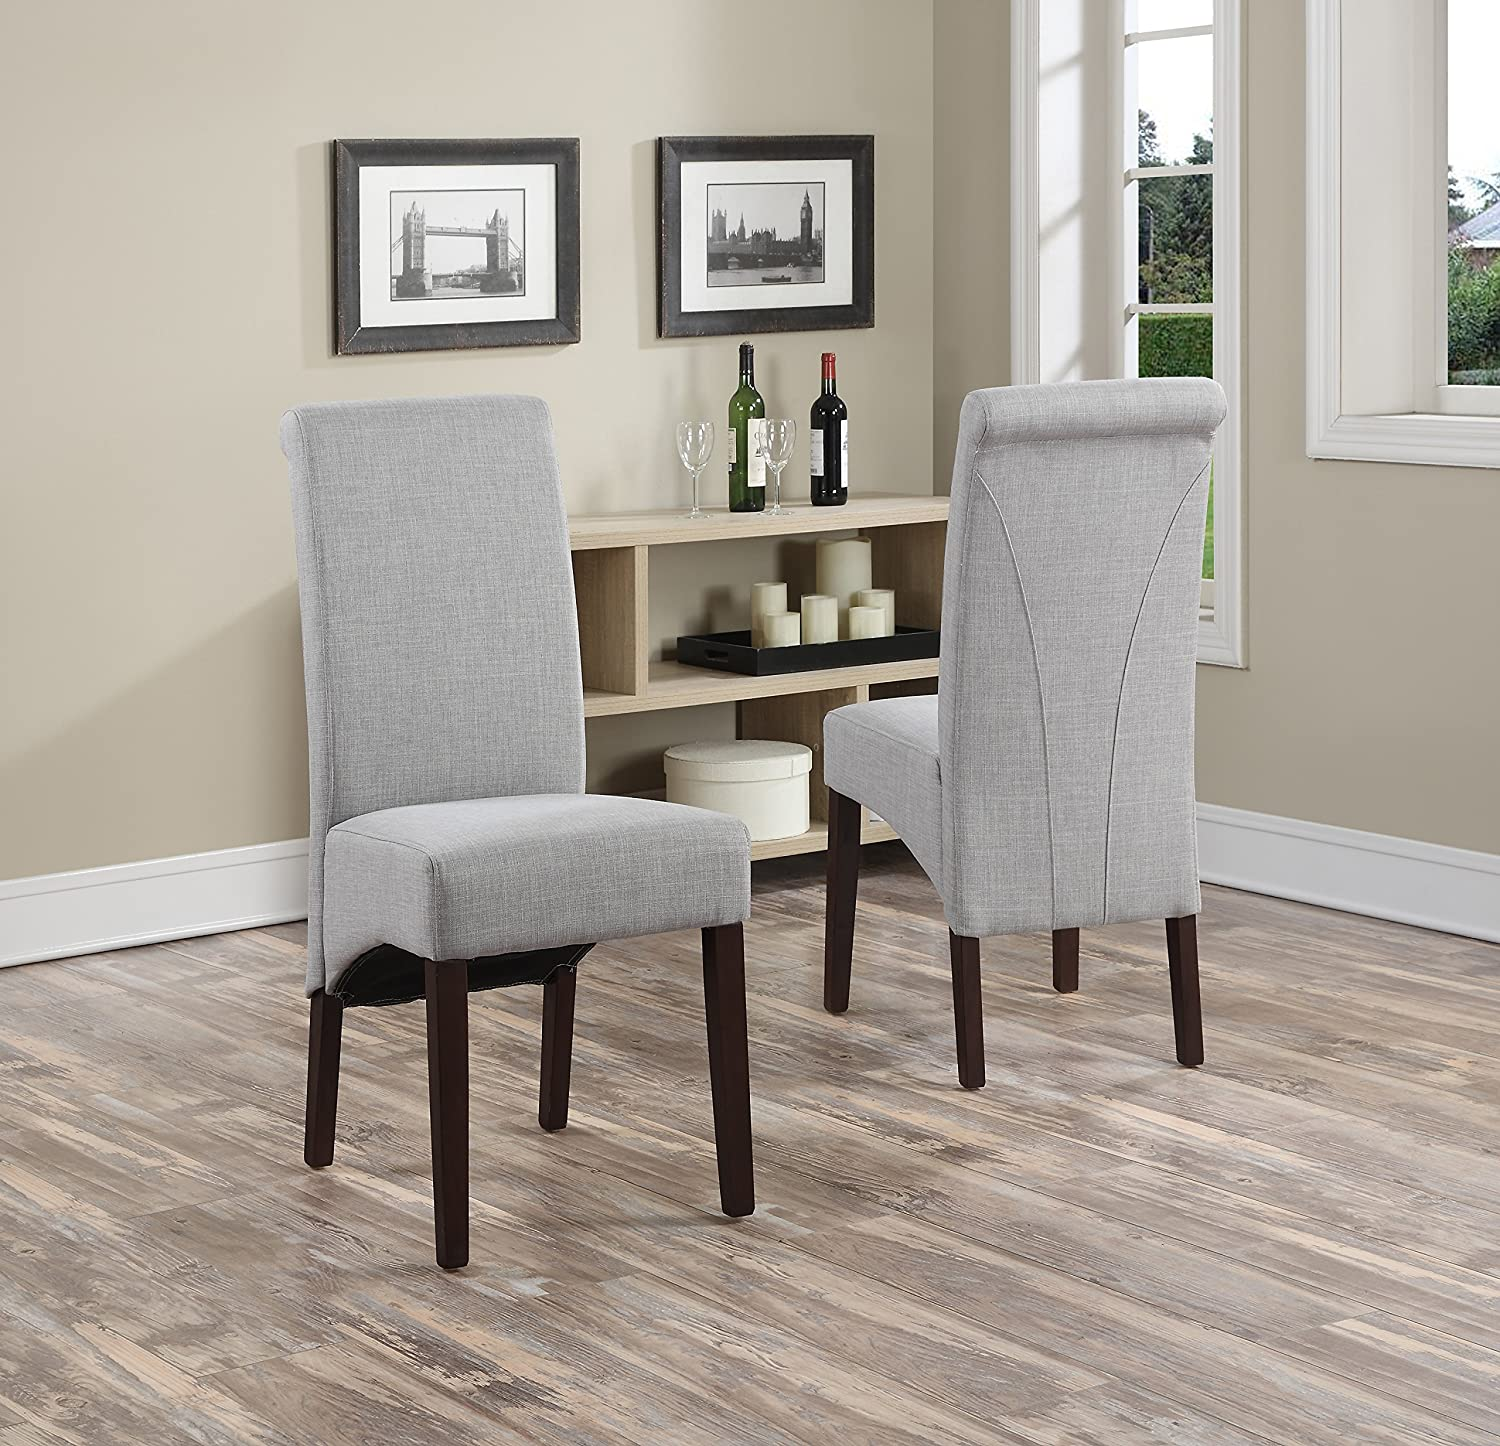 Amazon Simpli Home Avalon Linen Deluxe Parson Chair Dove Grey Set Of 2 Kitchen Dining